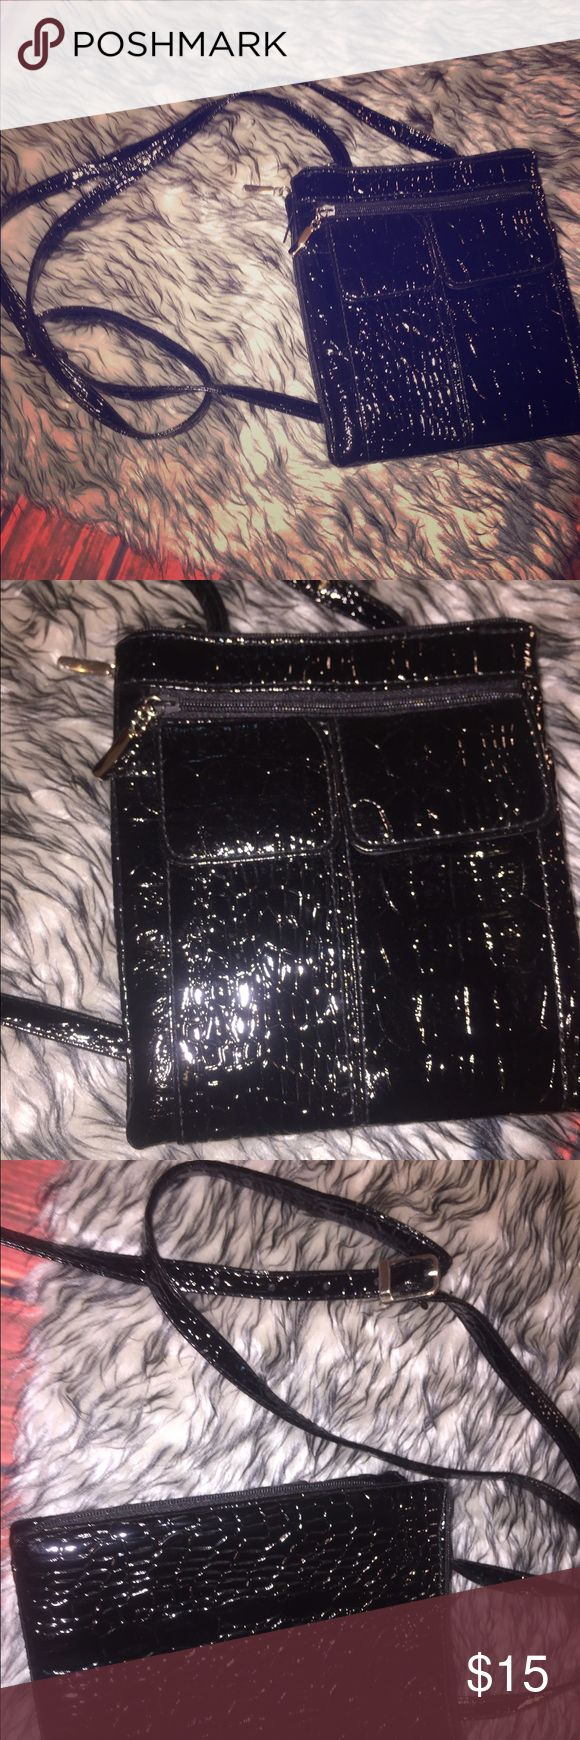 Small cross body Snakeskin printed patent leather purse, good used condition. Really cute and dainty, with TONS of pockets and three different zip up storage areas. Great for traveling, couponing, errands, festivals or movie nights! Bags Crossbody Bags